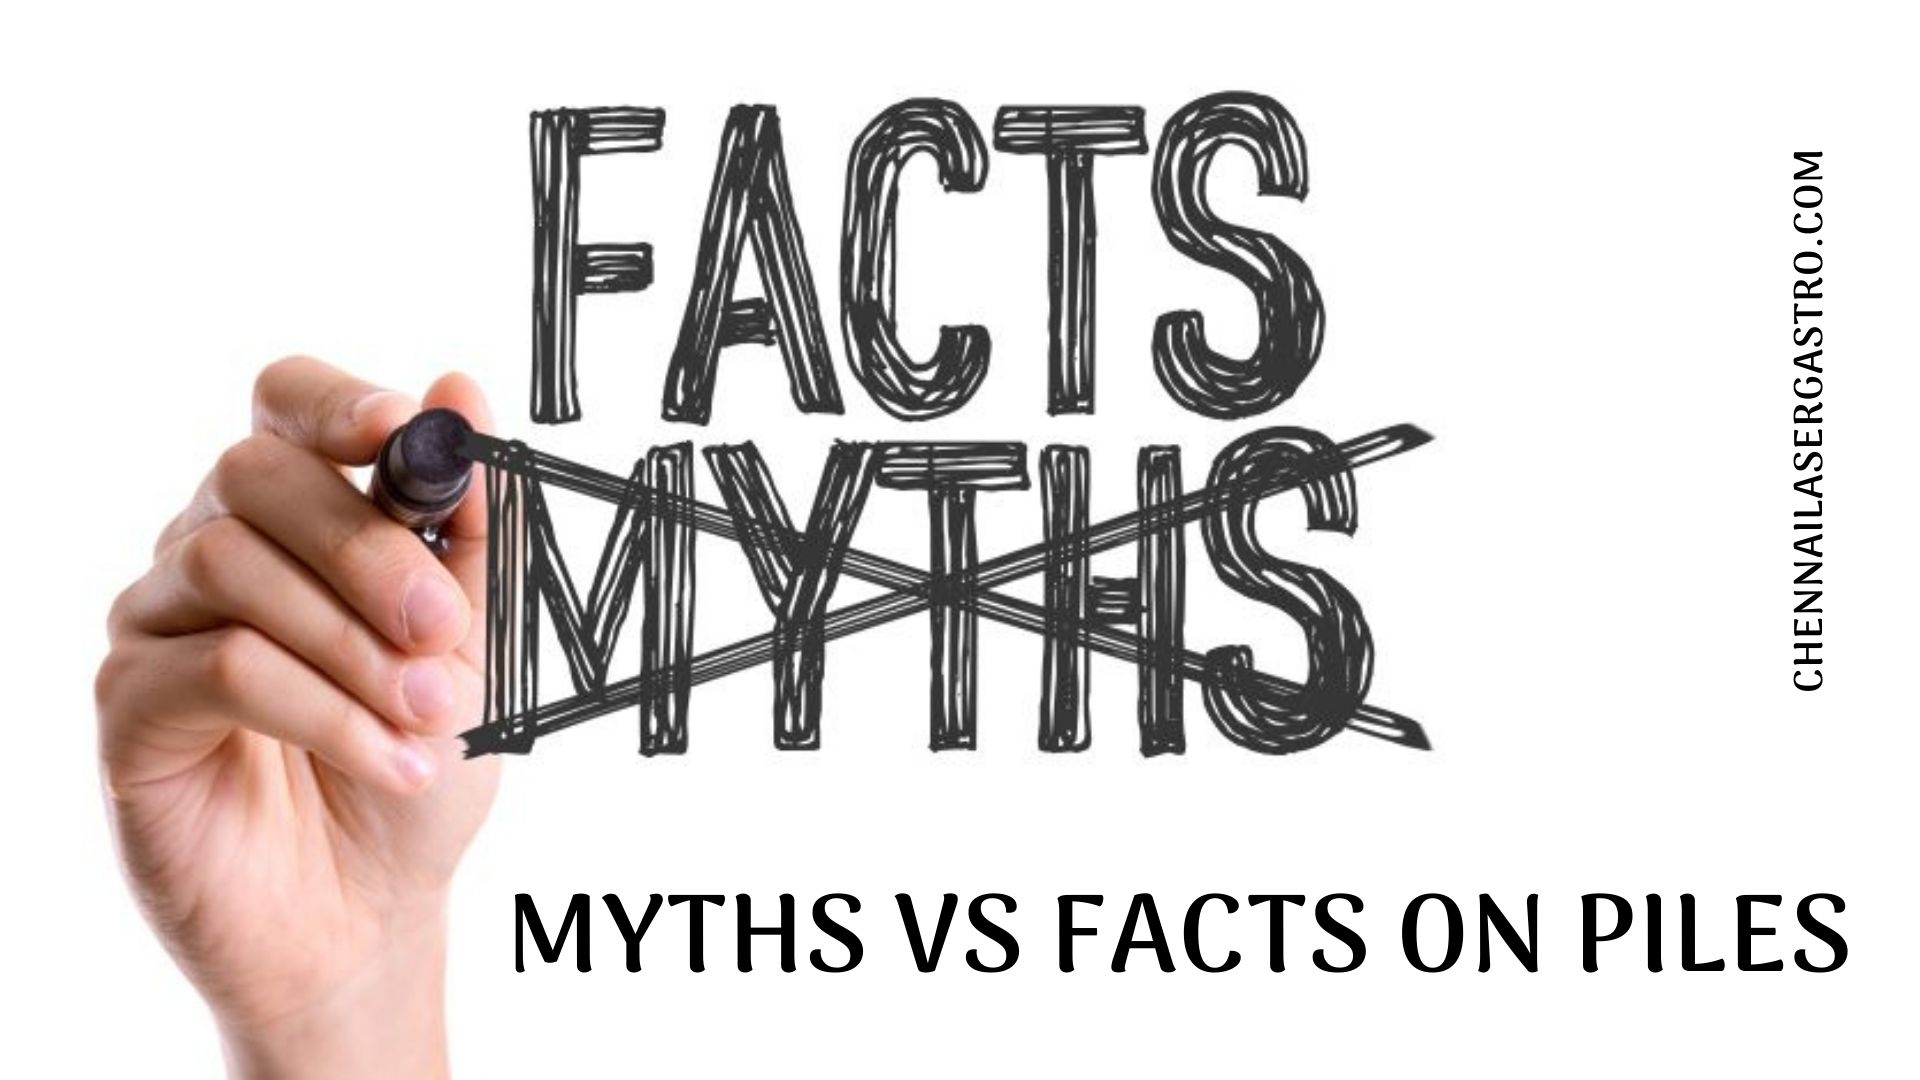 myths vs facts on piles